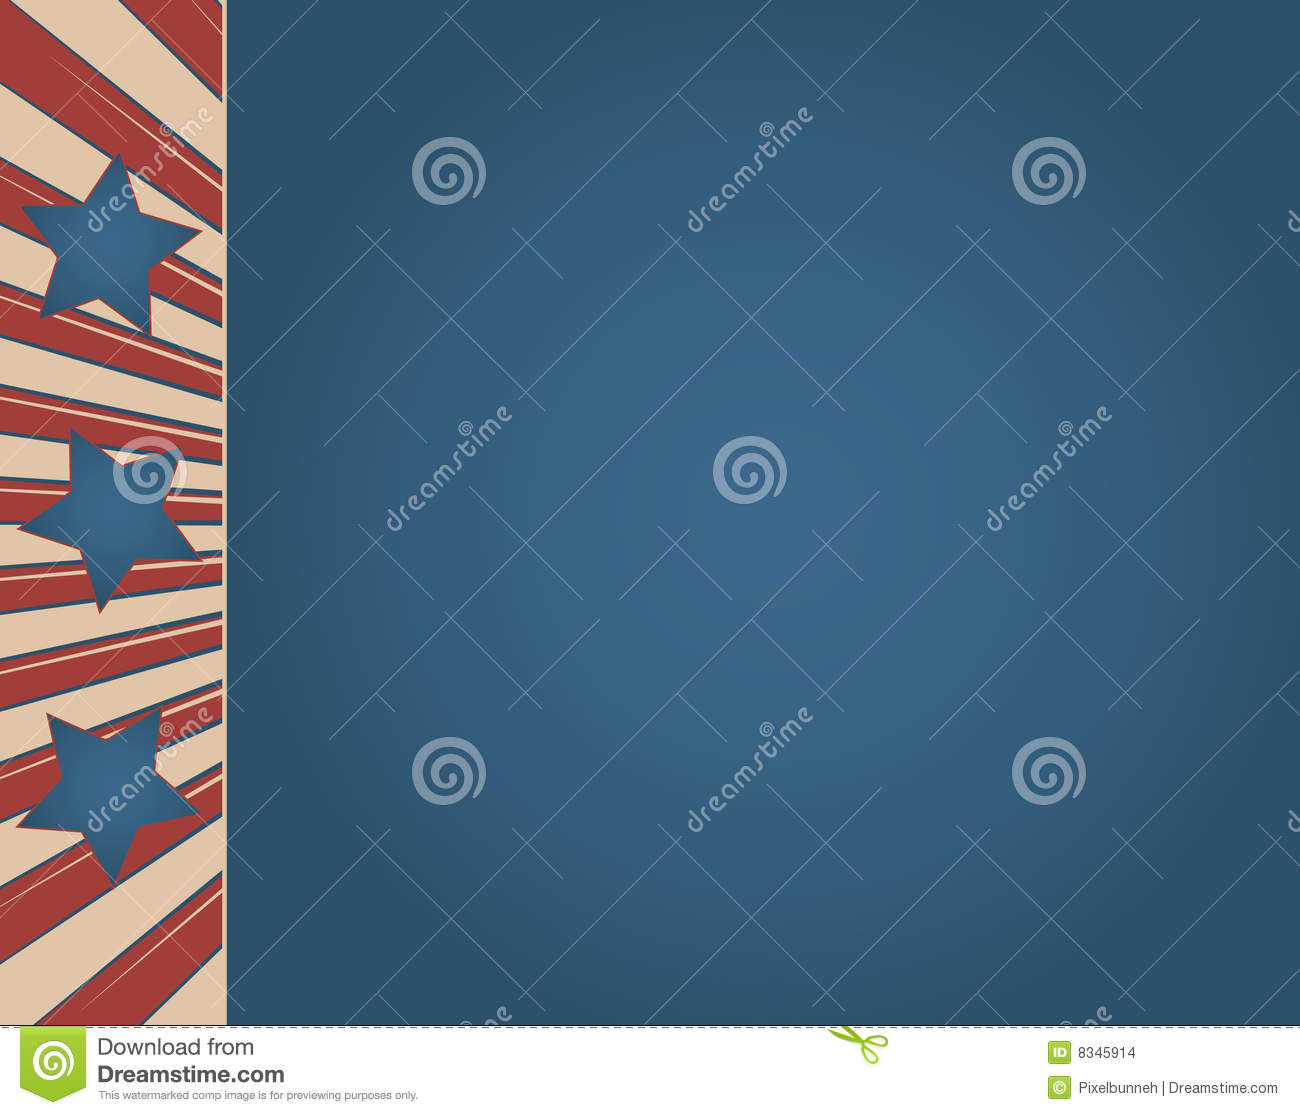 Vintage Americana Background Vintage american flag signVintage Americana Background